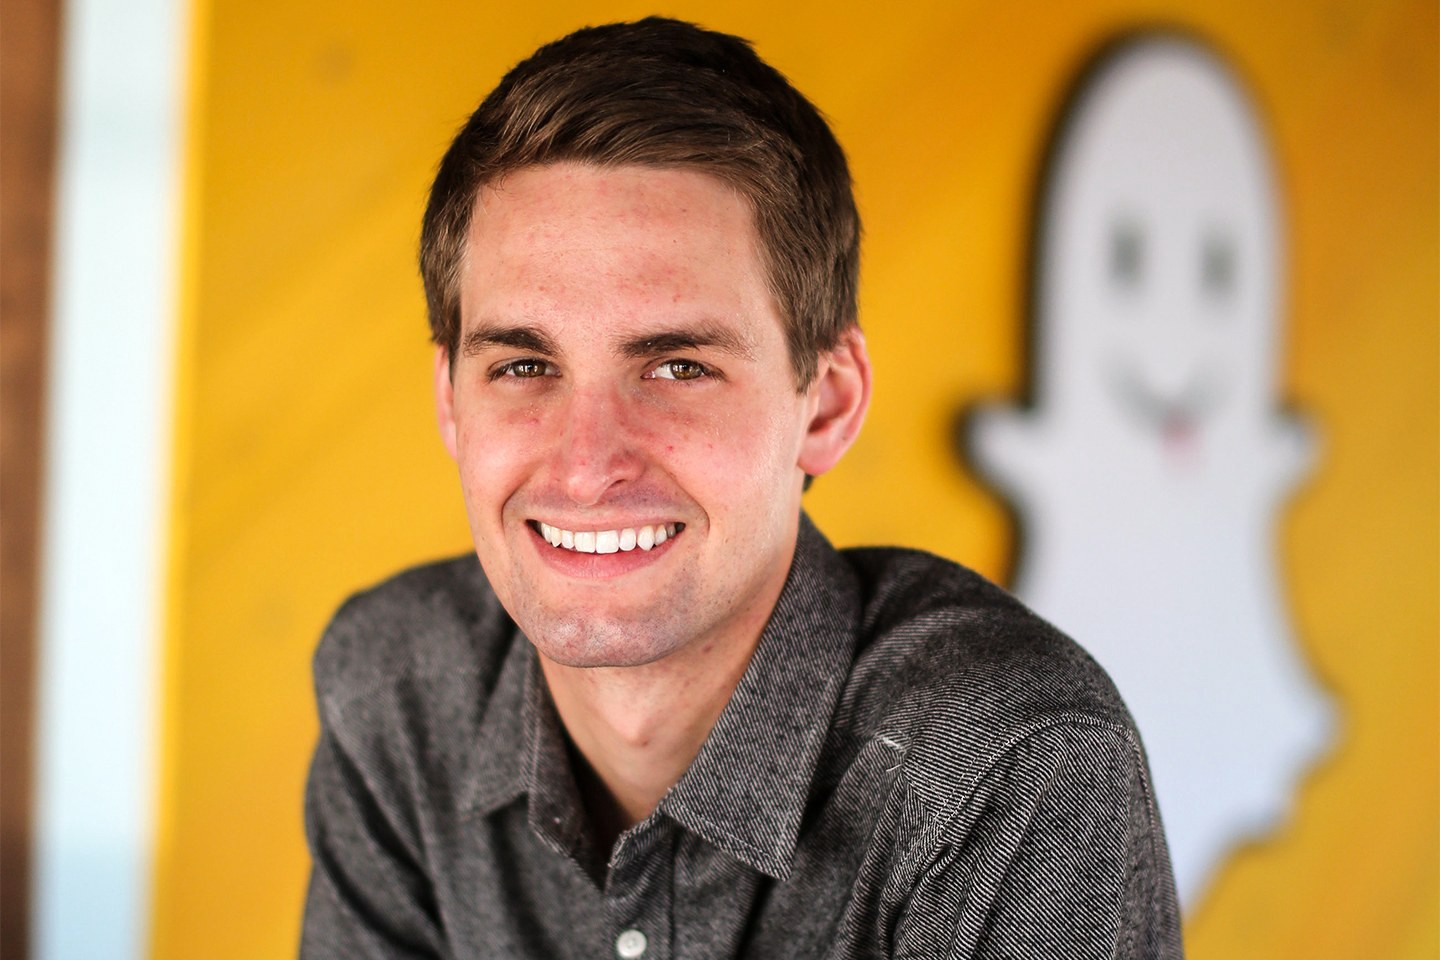 Evan spiegel and the future of snapchat glen whillier - Snapchat spiegel ...